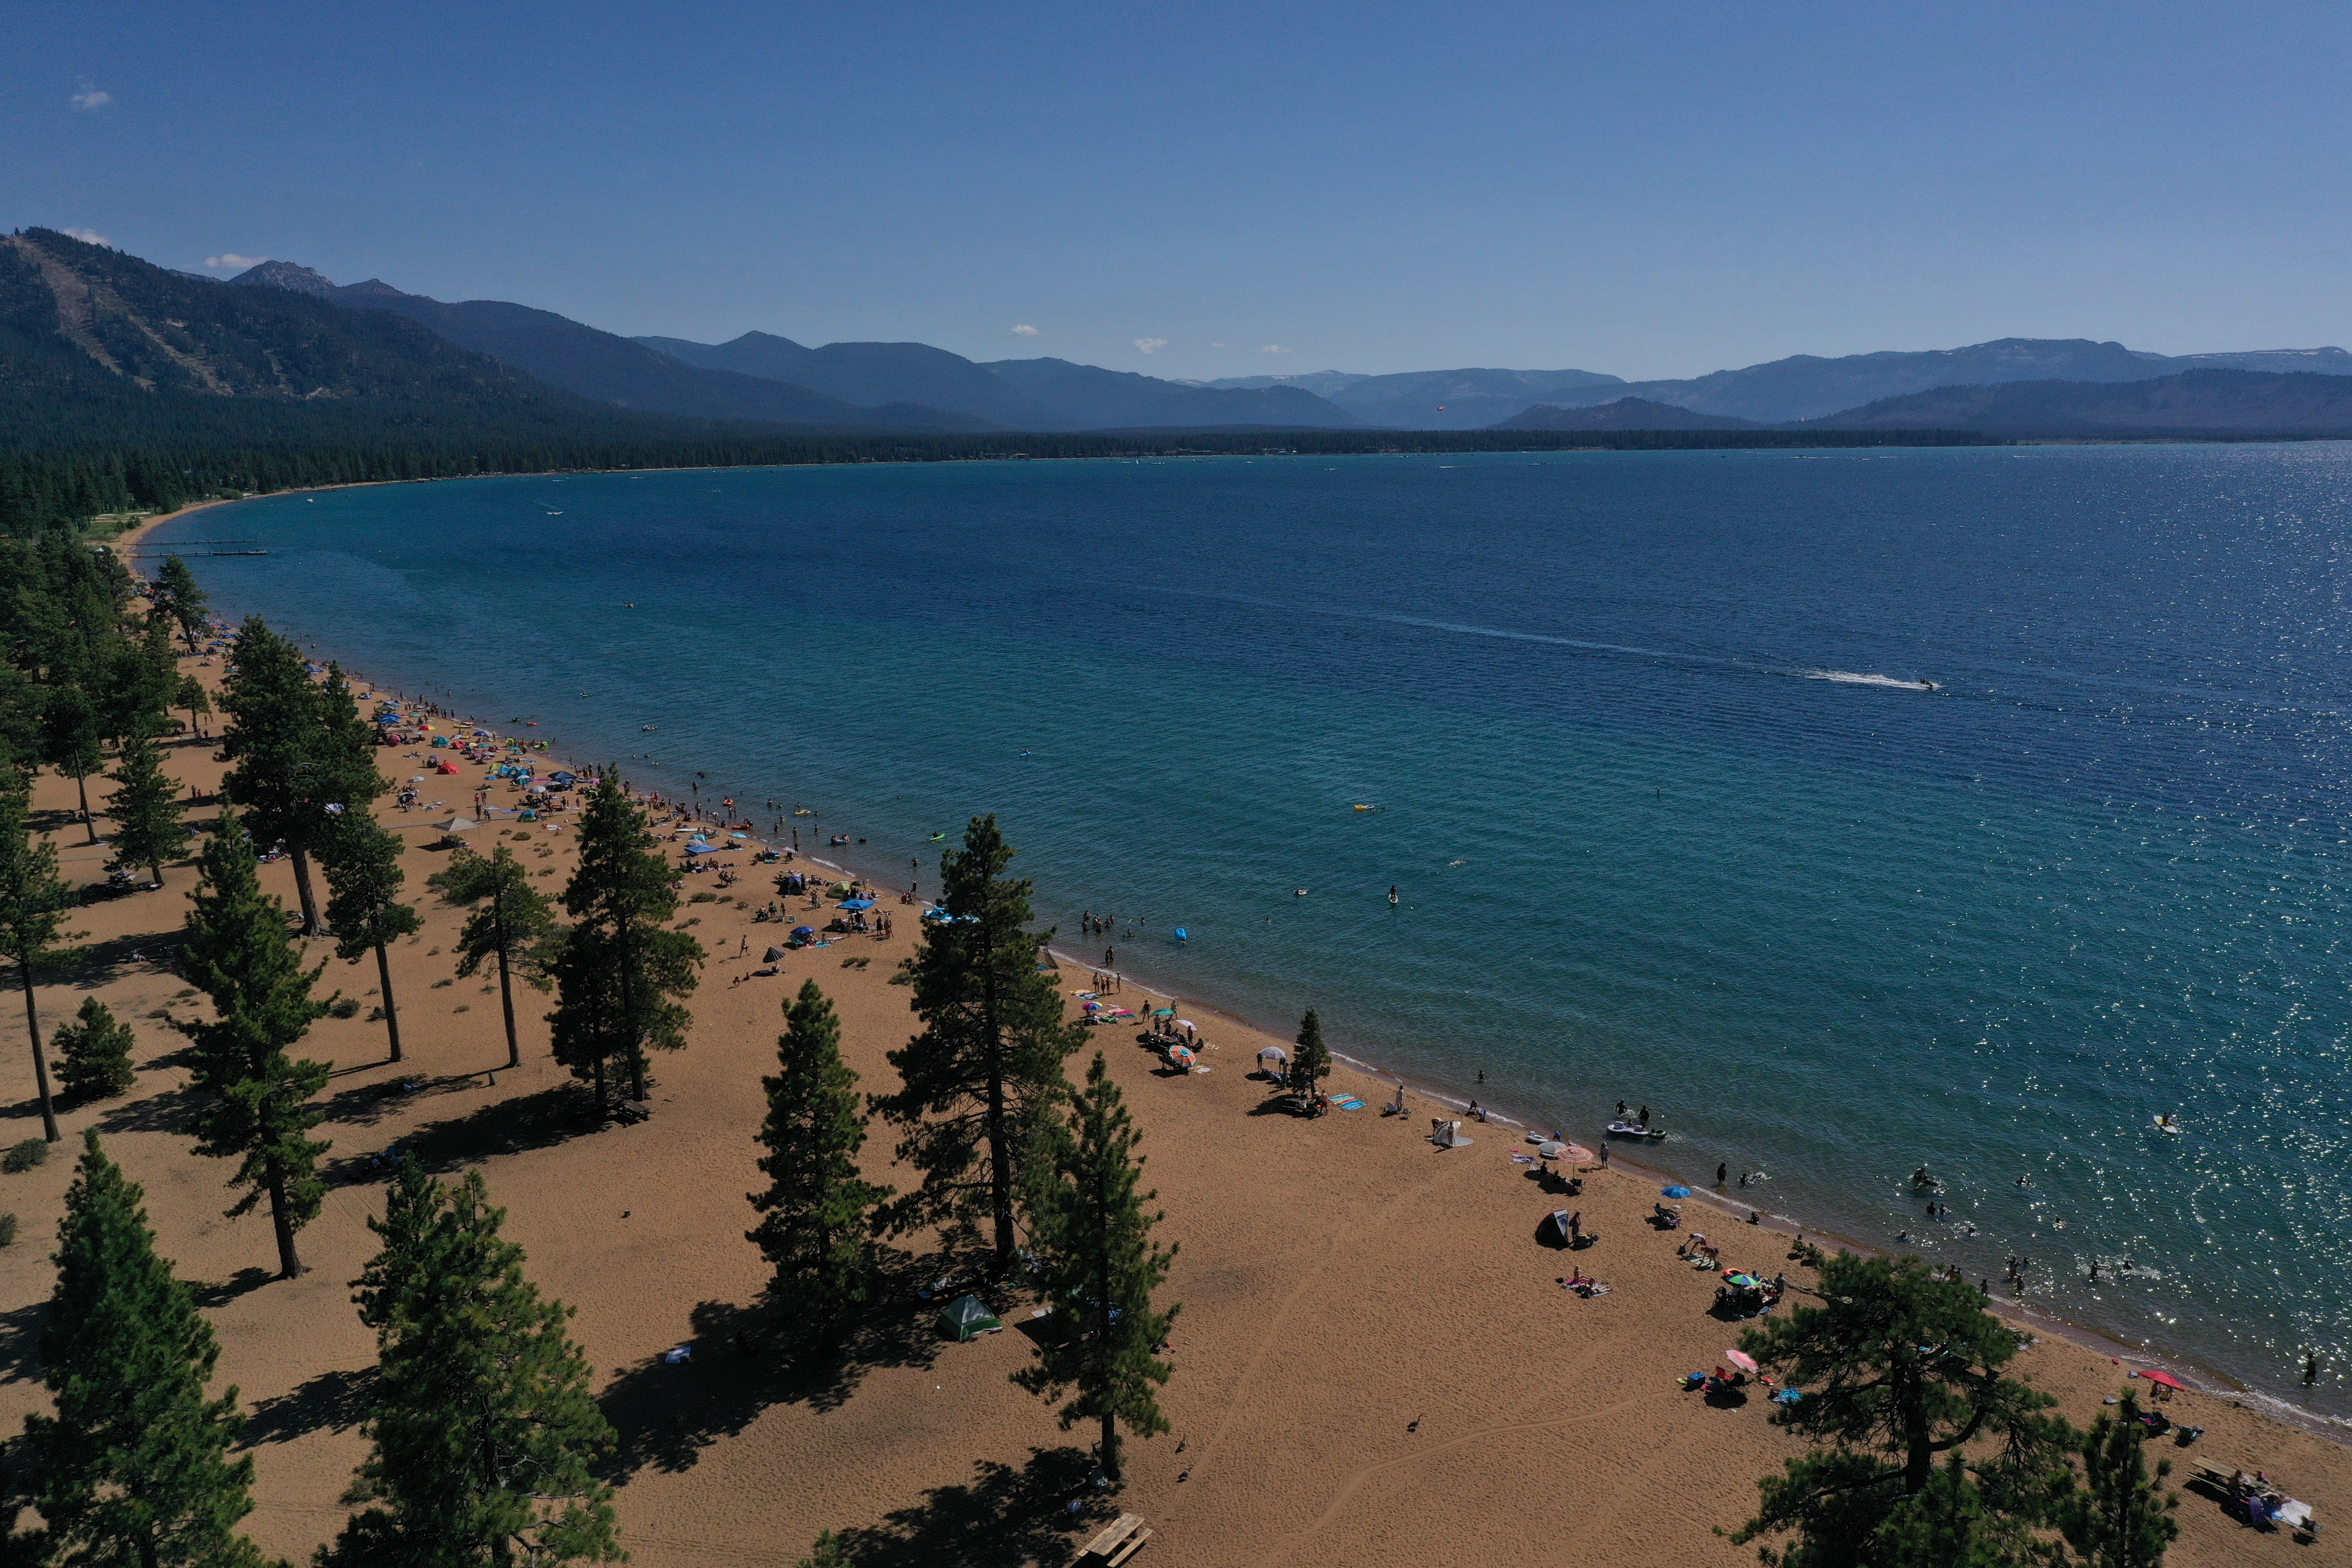 zephyr cove lake tahoe, nevada